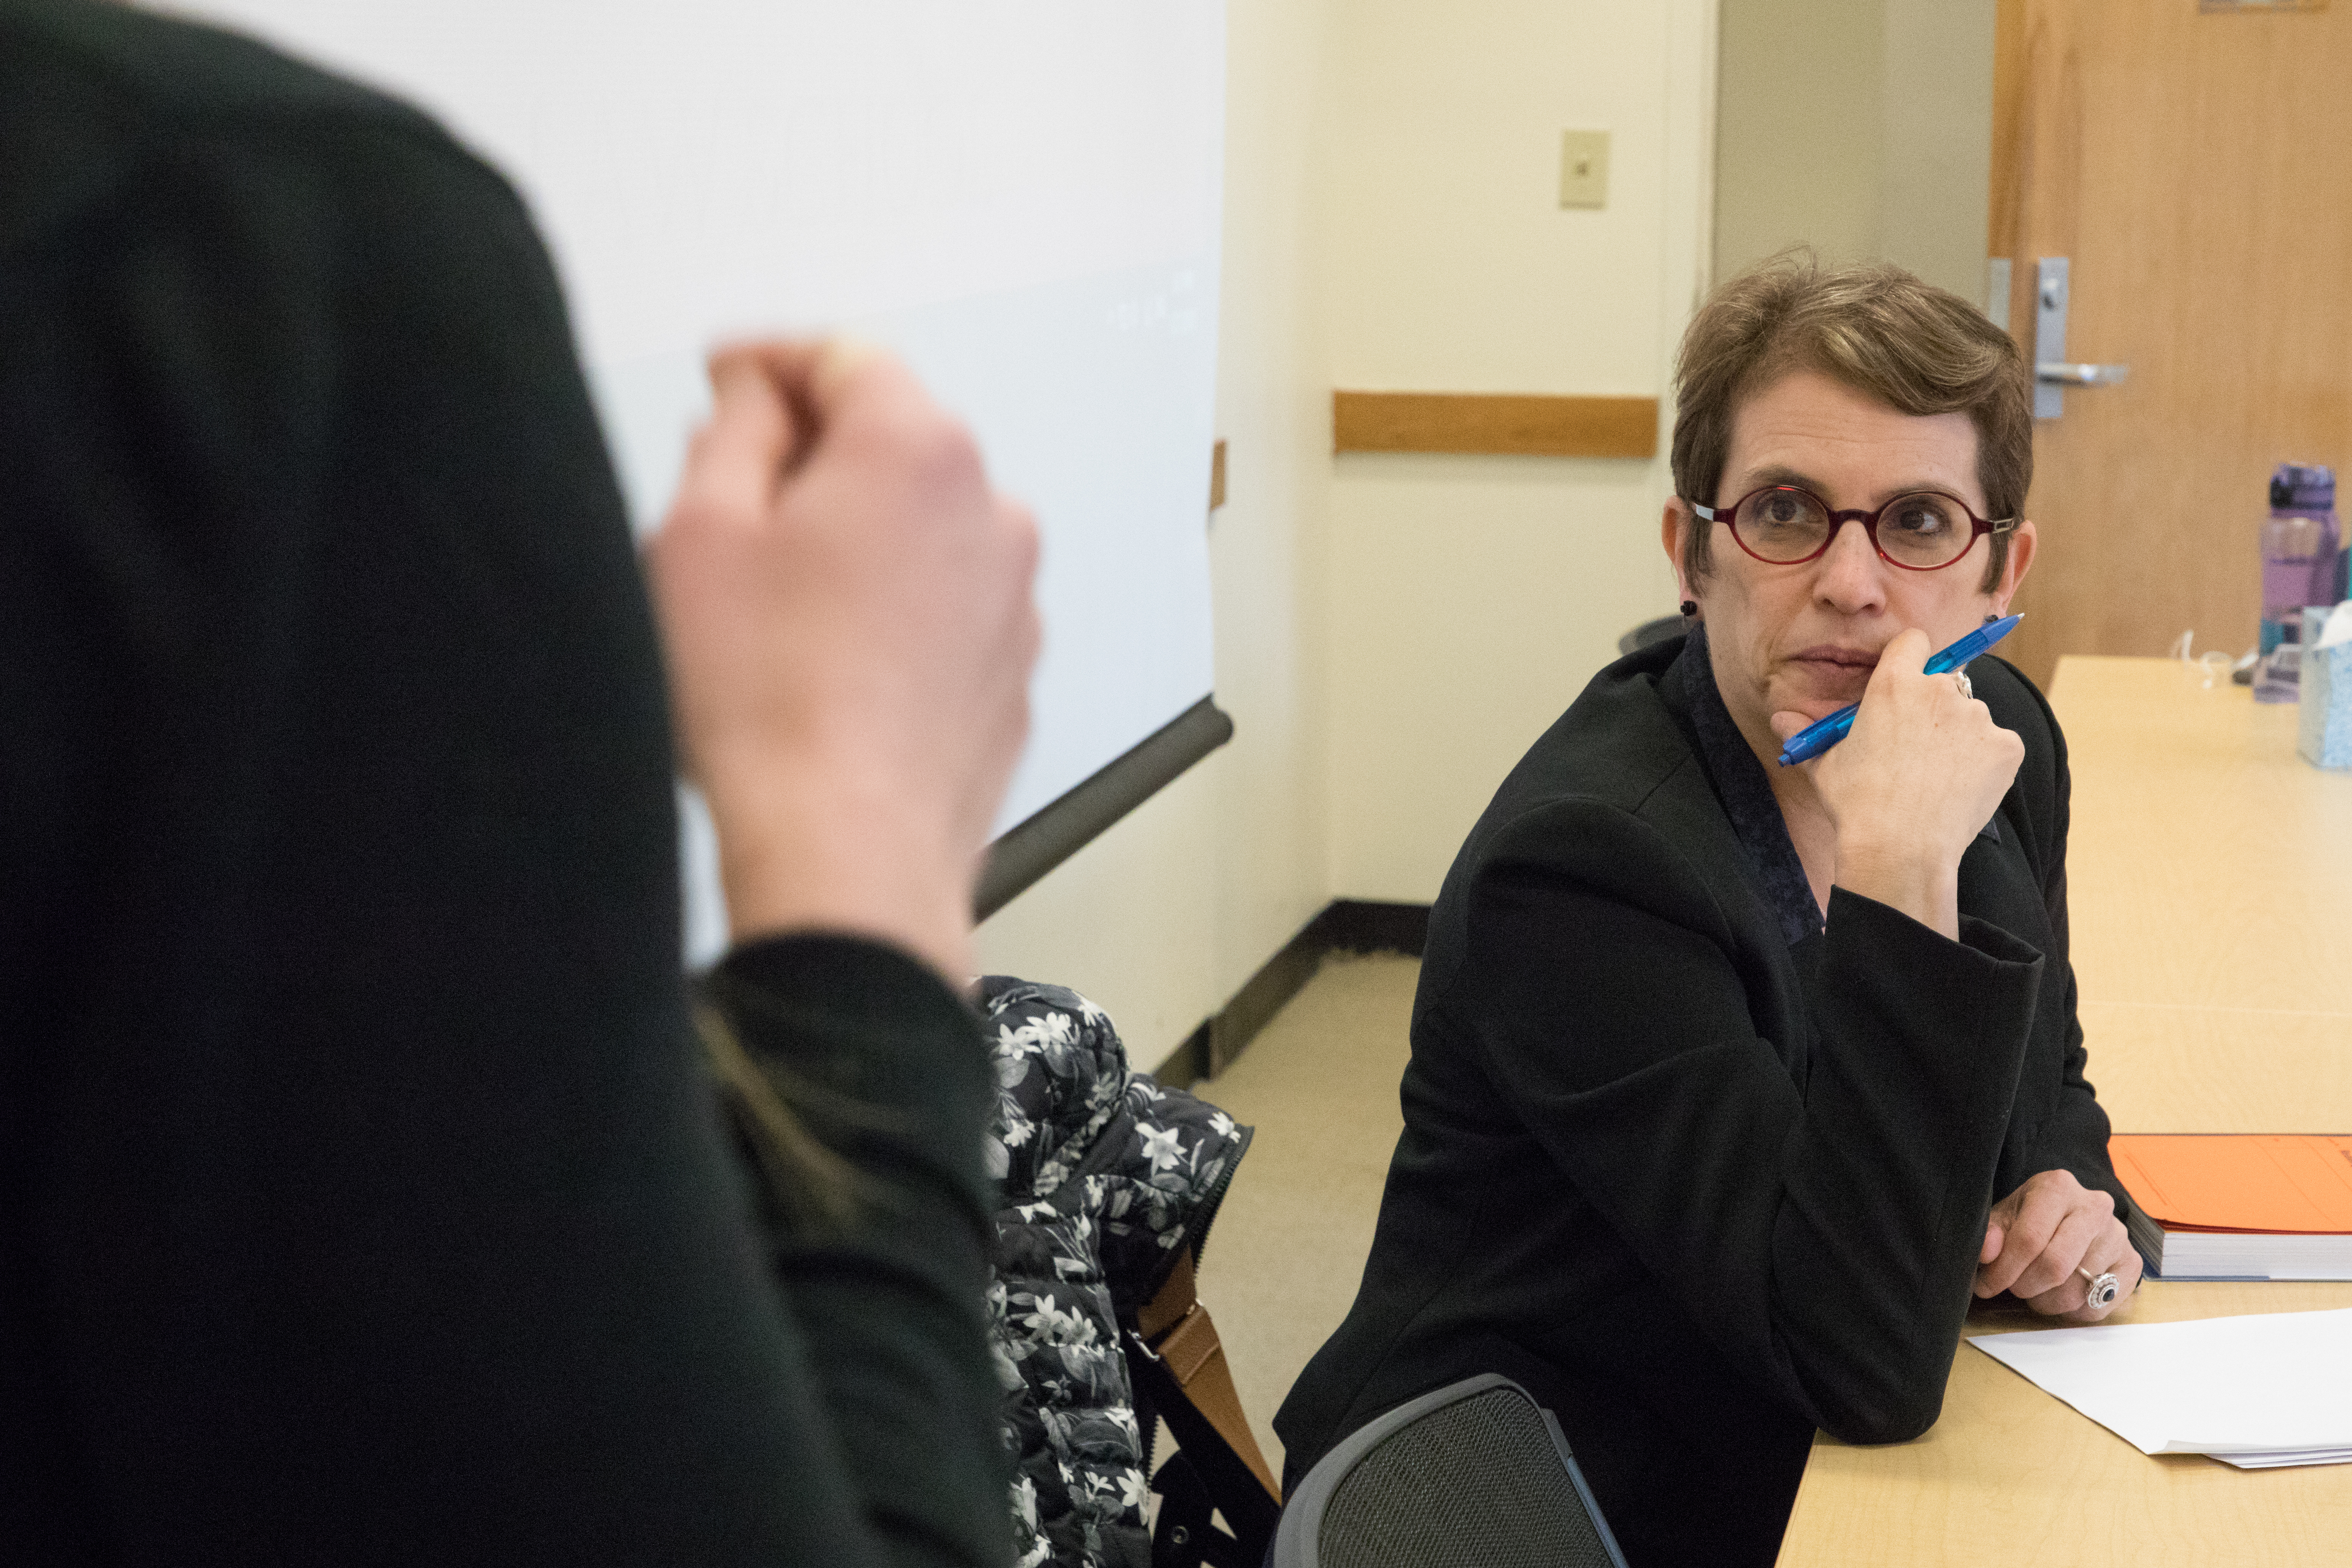 Professor Sharon Block listening to a student at her desk